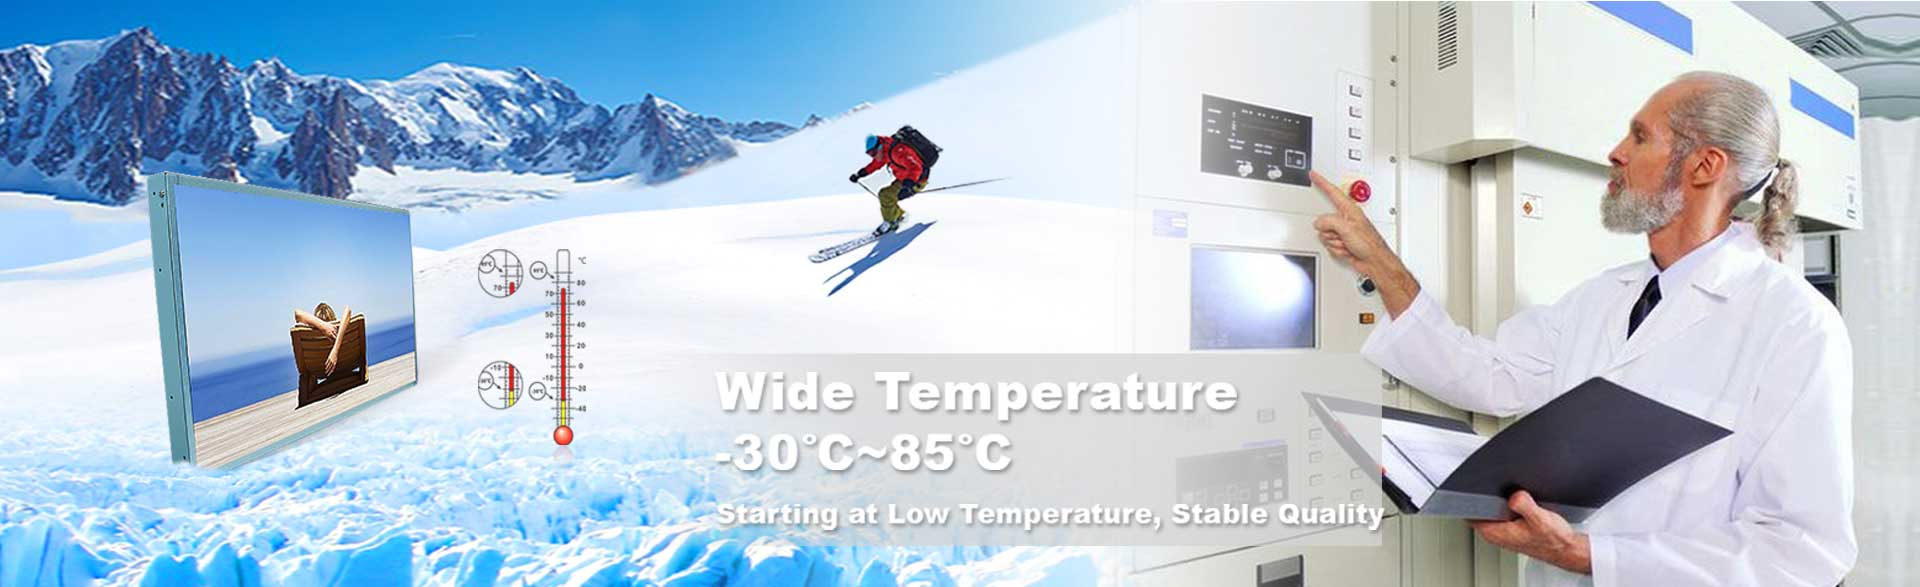 Wide Temperature Range LCD Monitors